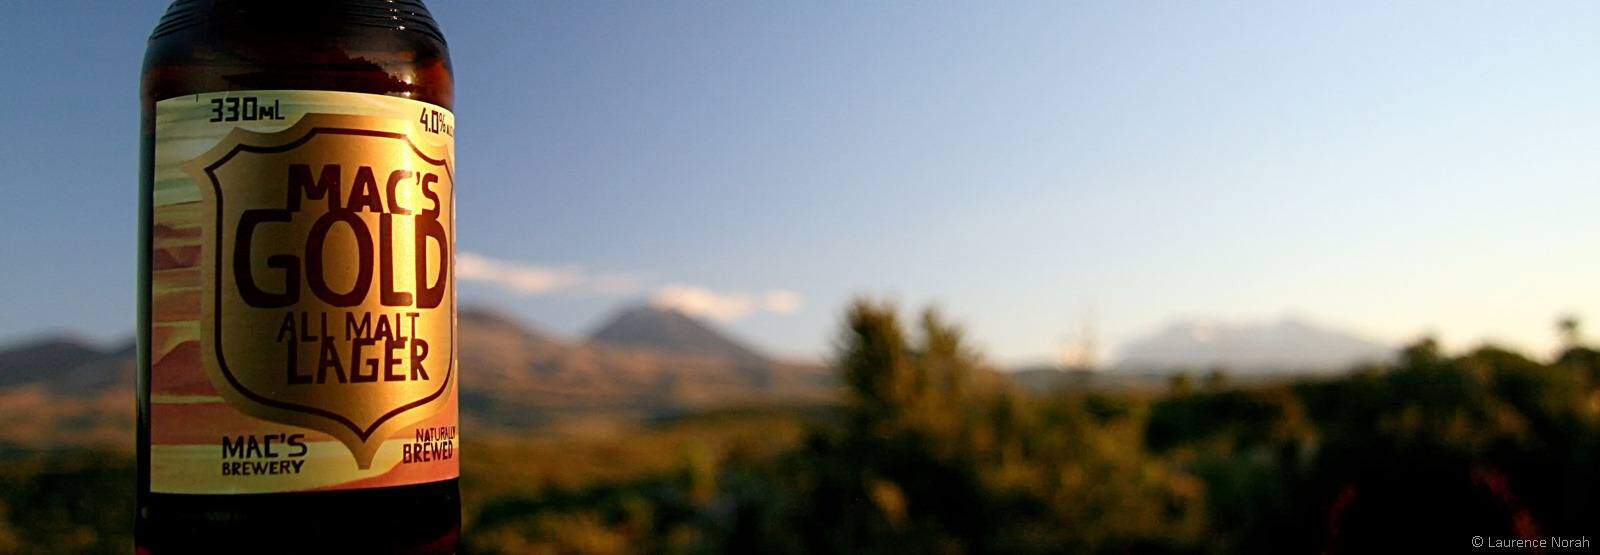 Macs Gold beer bottle with Tongariro National Park in the background